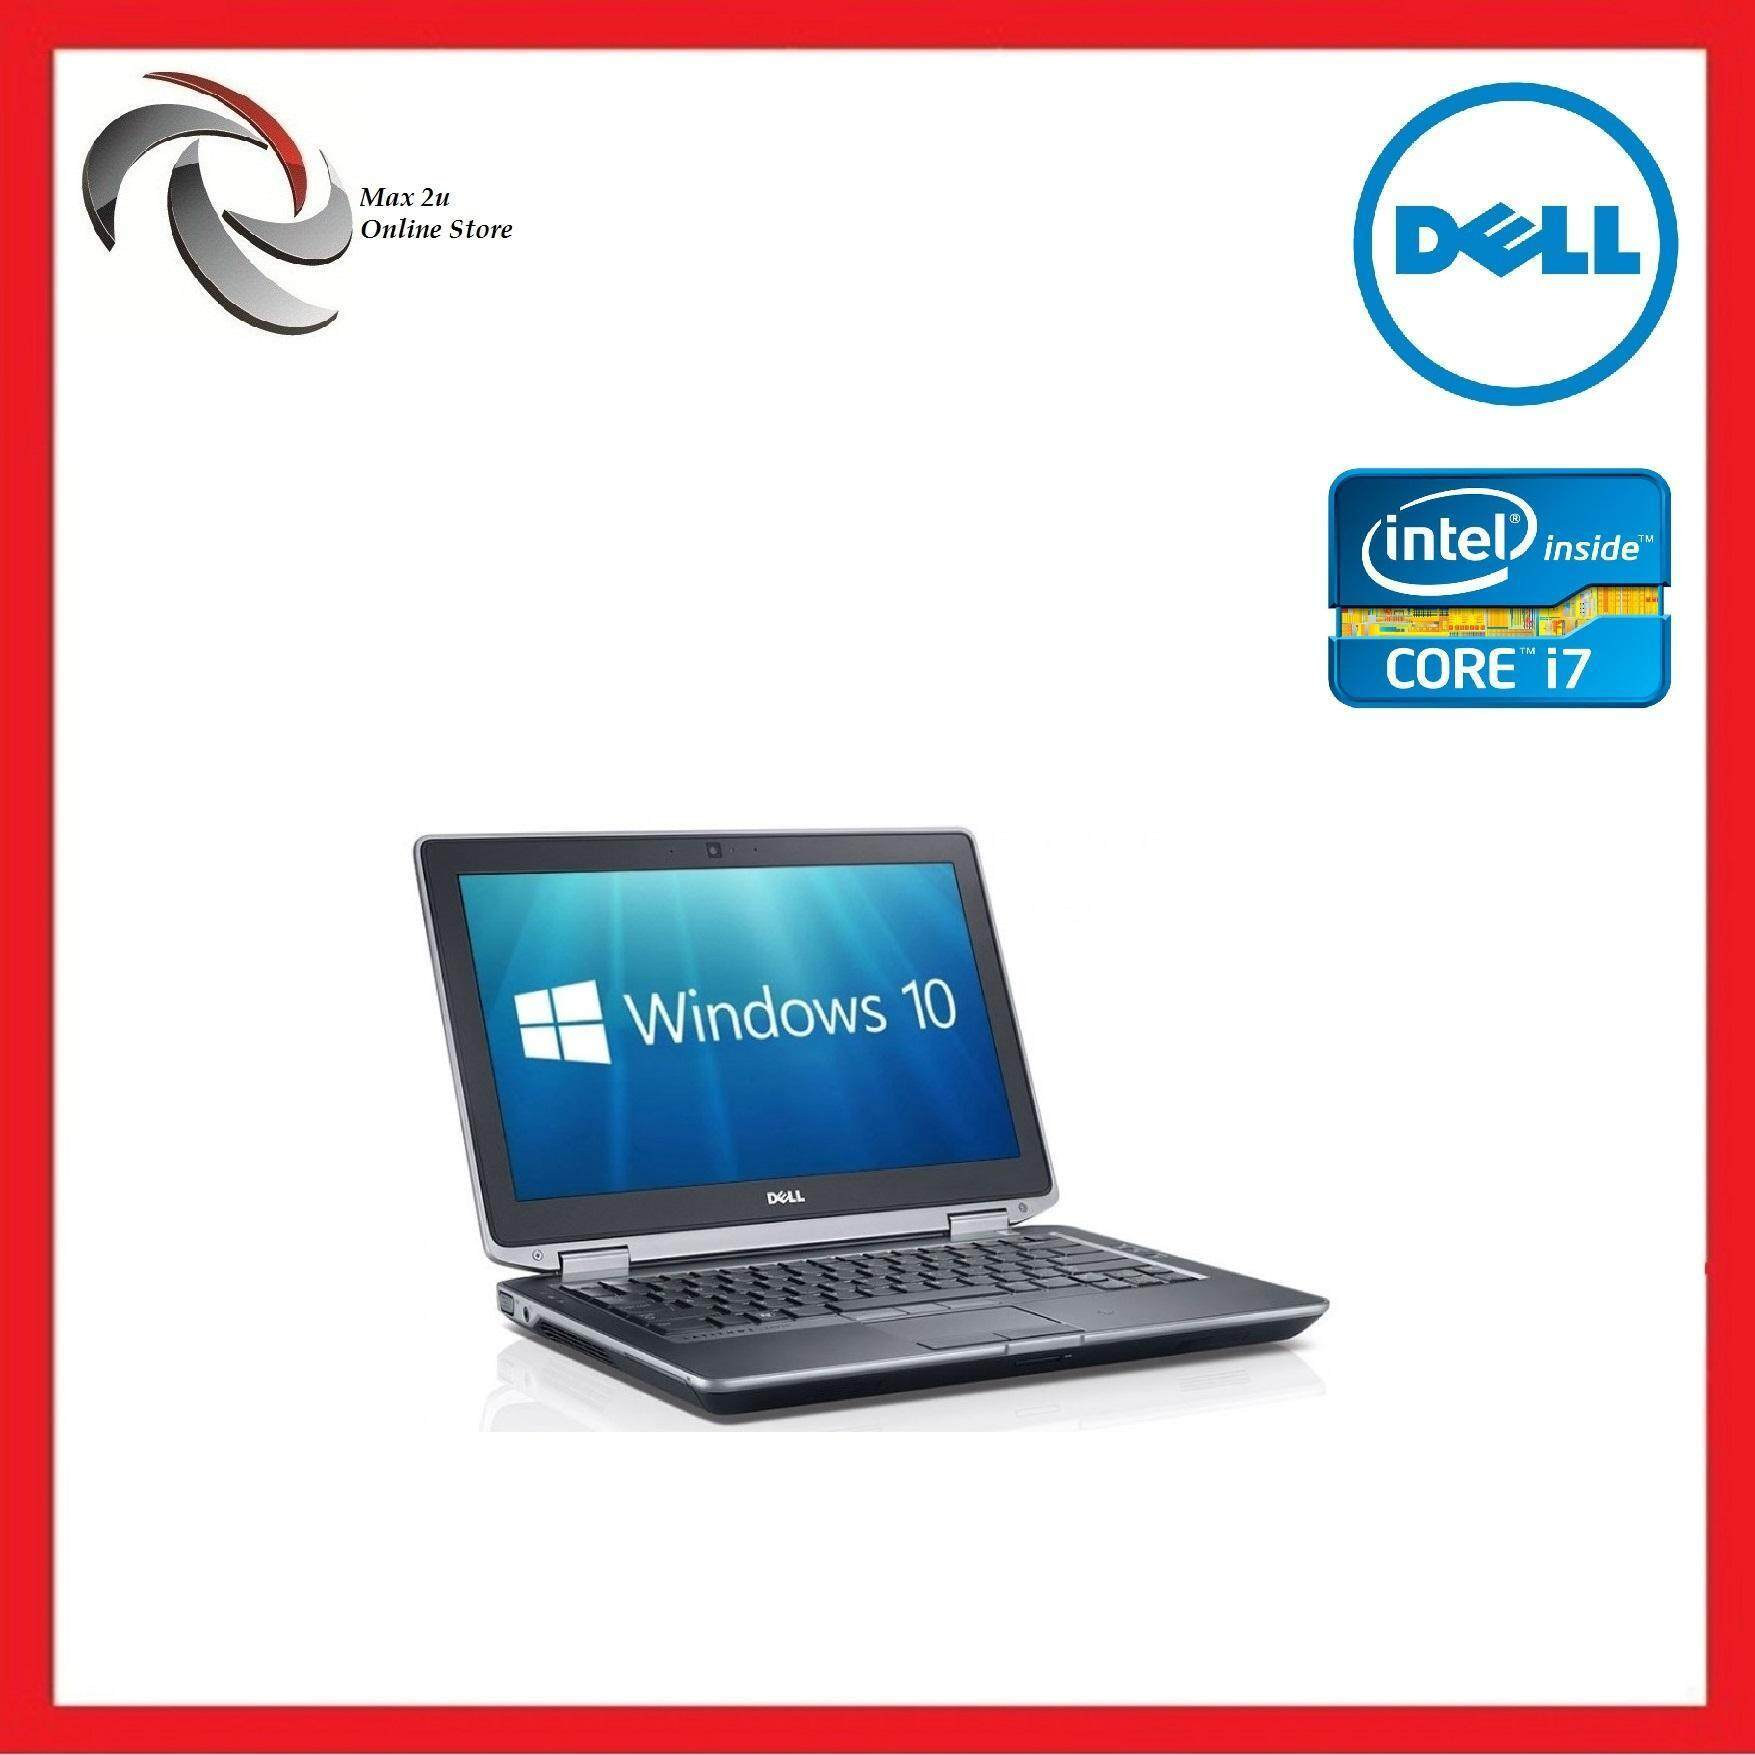 REFURBISHED Notebook Laptop Dell Latitude E6330 i7-3450 2.9ghz/4GB/240GB SSD/13.3  /Warranty 1Month/free mouse Malaysia